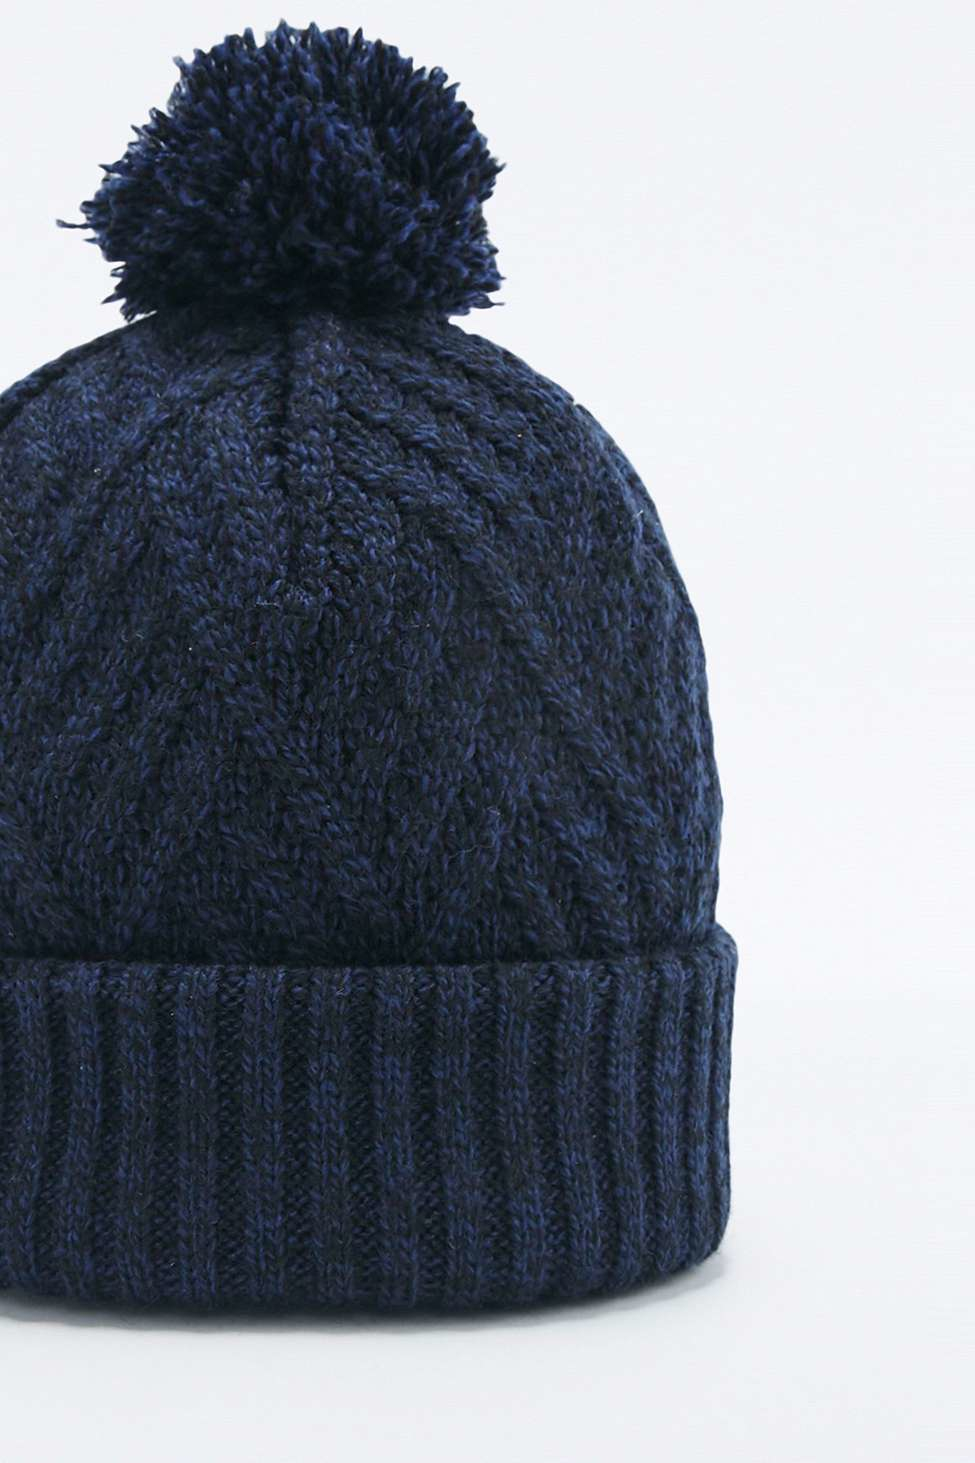 Urban Outfitters Cable Knit Navy Bobble Hat in Blue for Men - Lyst 68e8c50d5d6